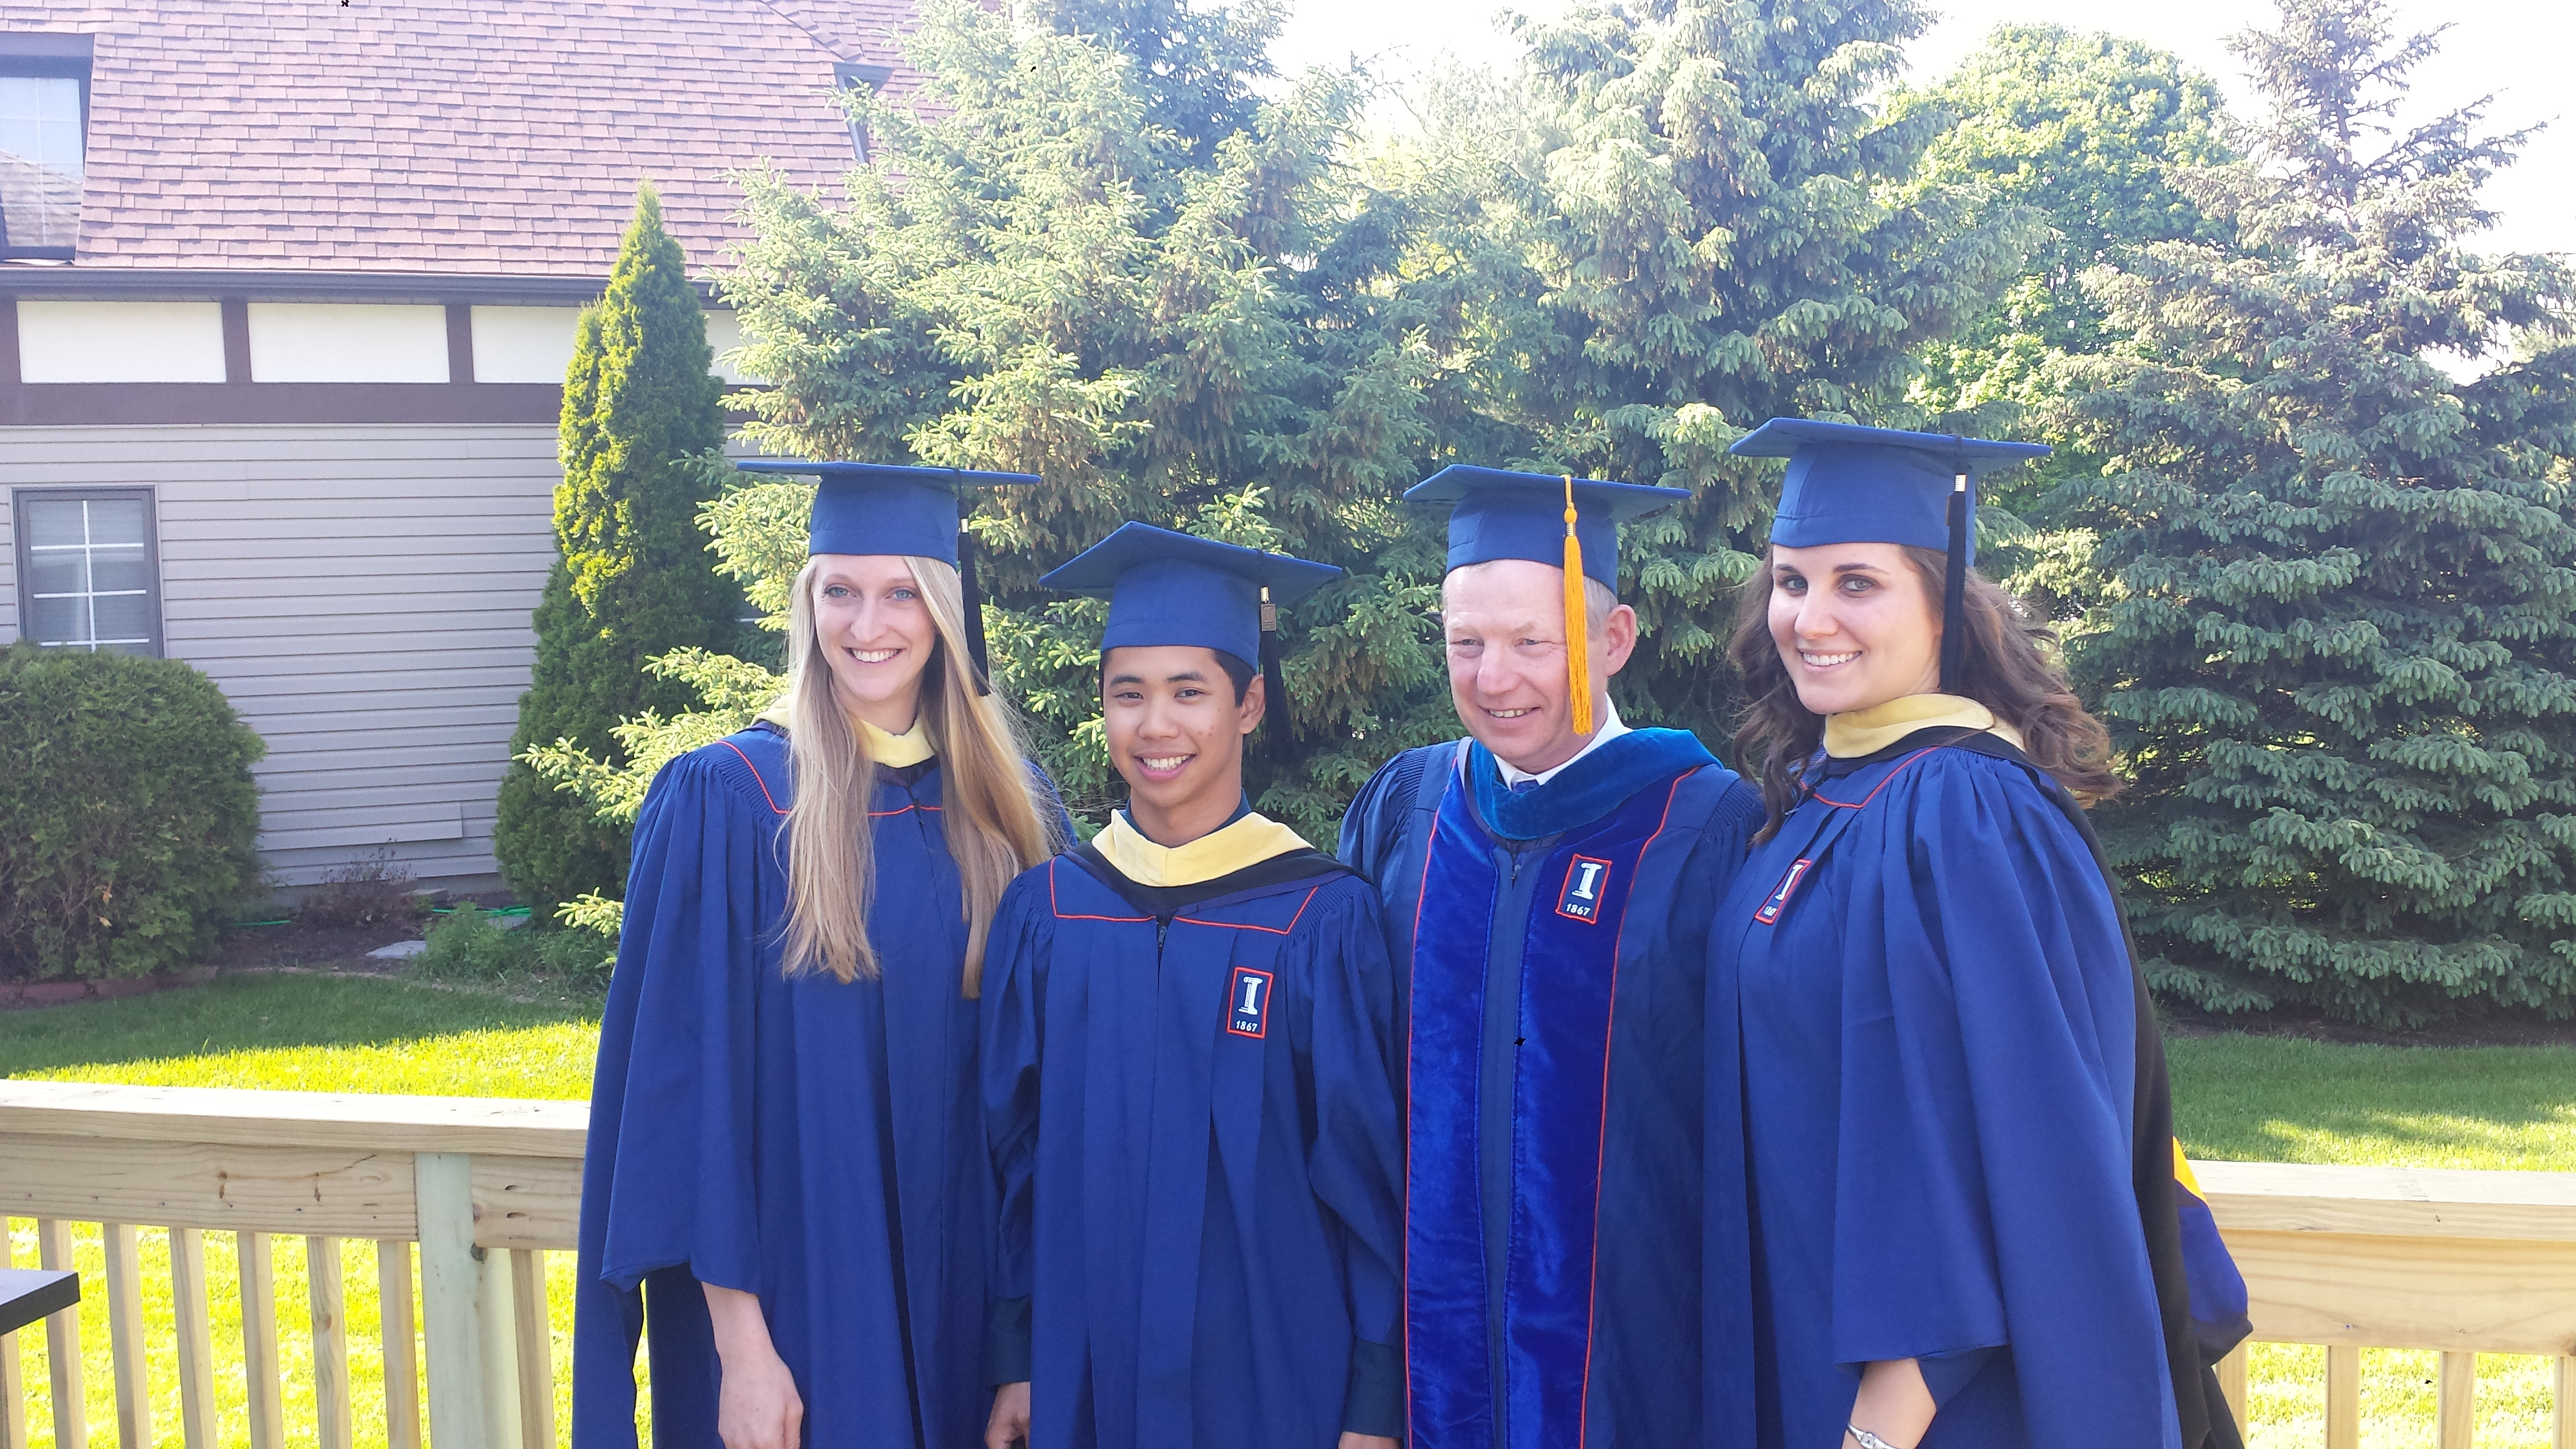 Chelsie, Diego, Dr. Stein, and Jessica celebrate Graduation.